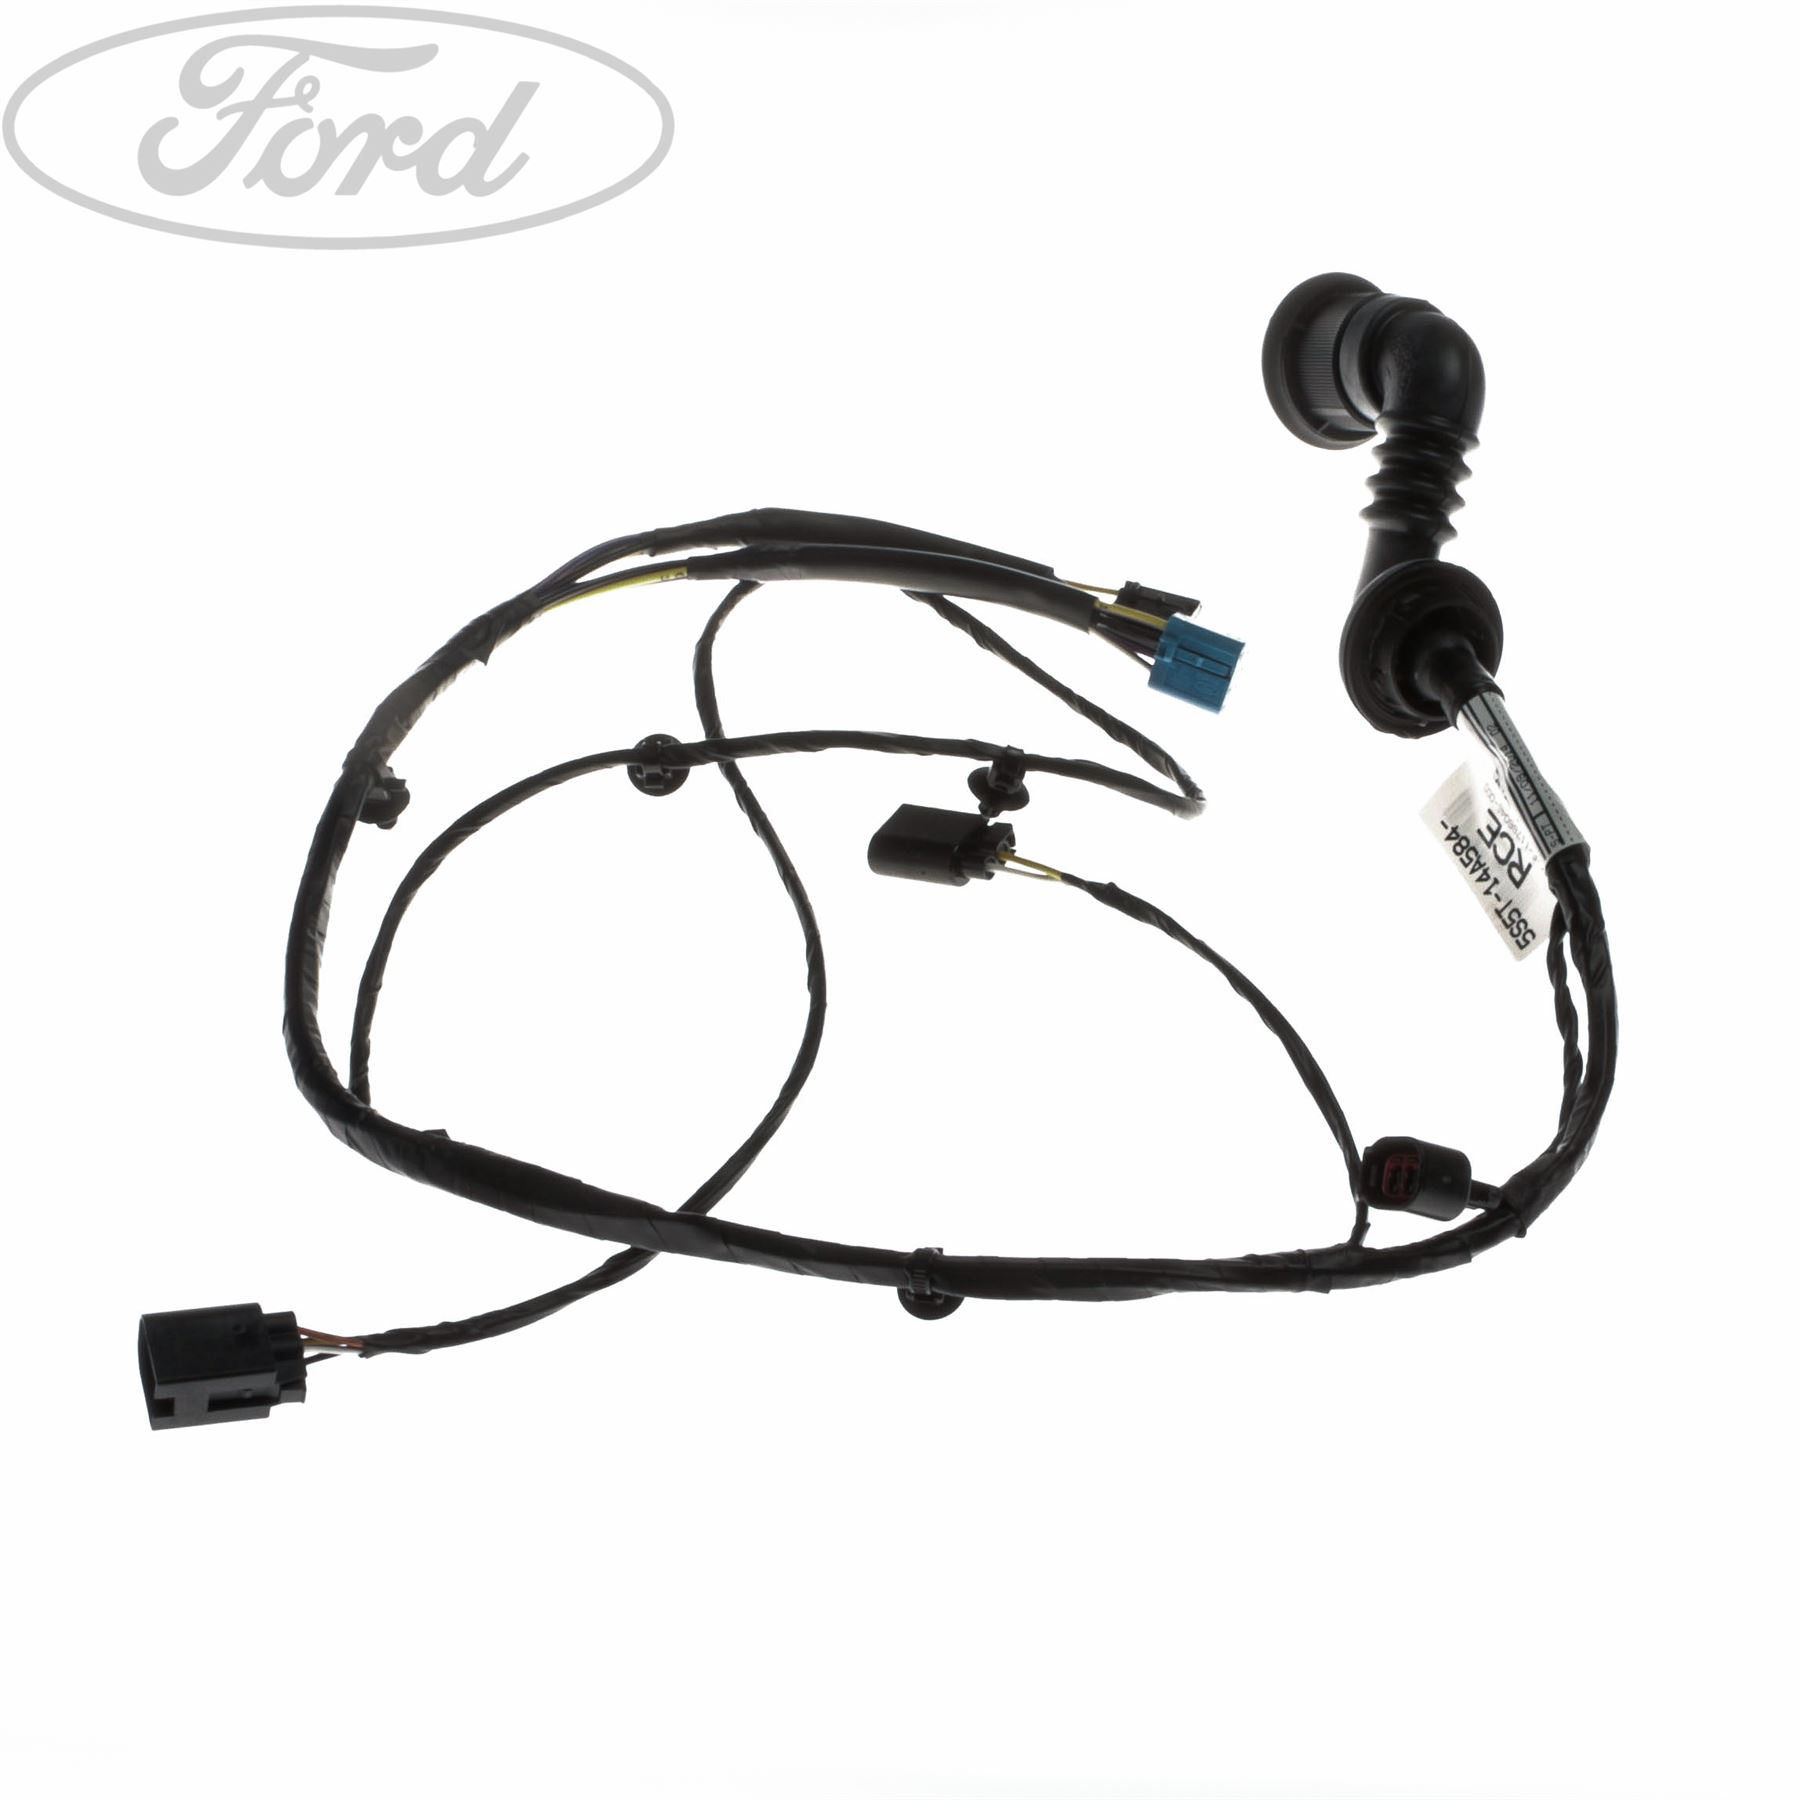 hight resolution of details about genuine ford ka mk1 front drivers door locking system wiring 1478707